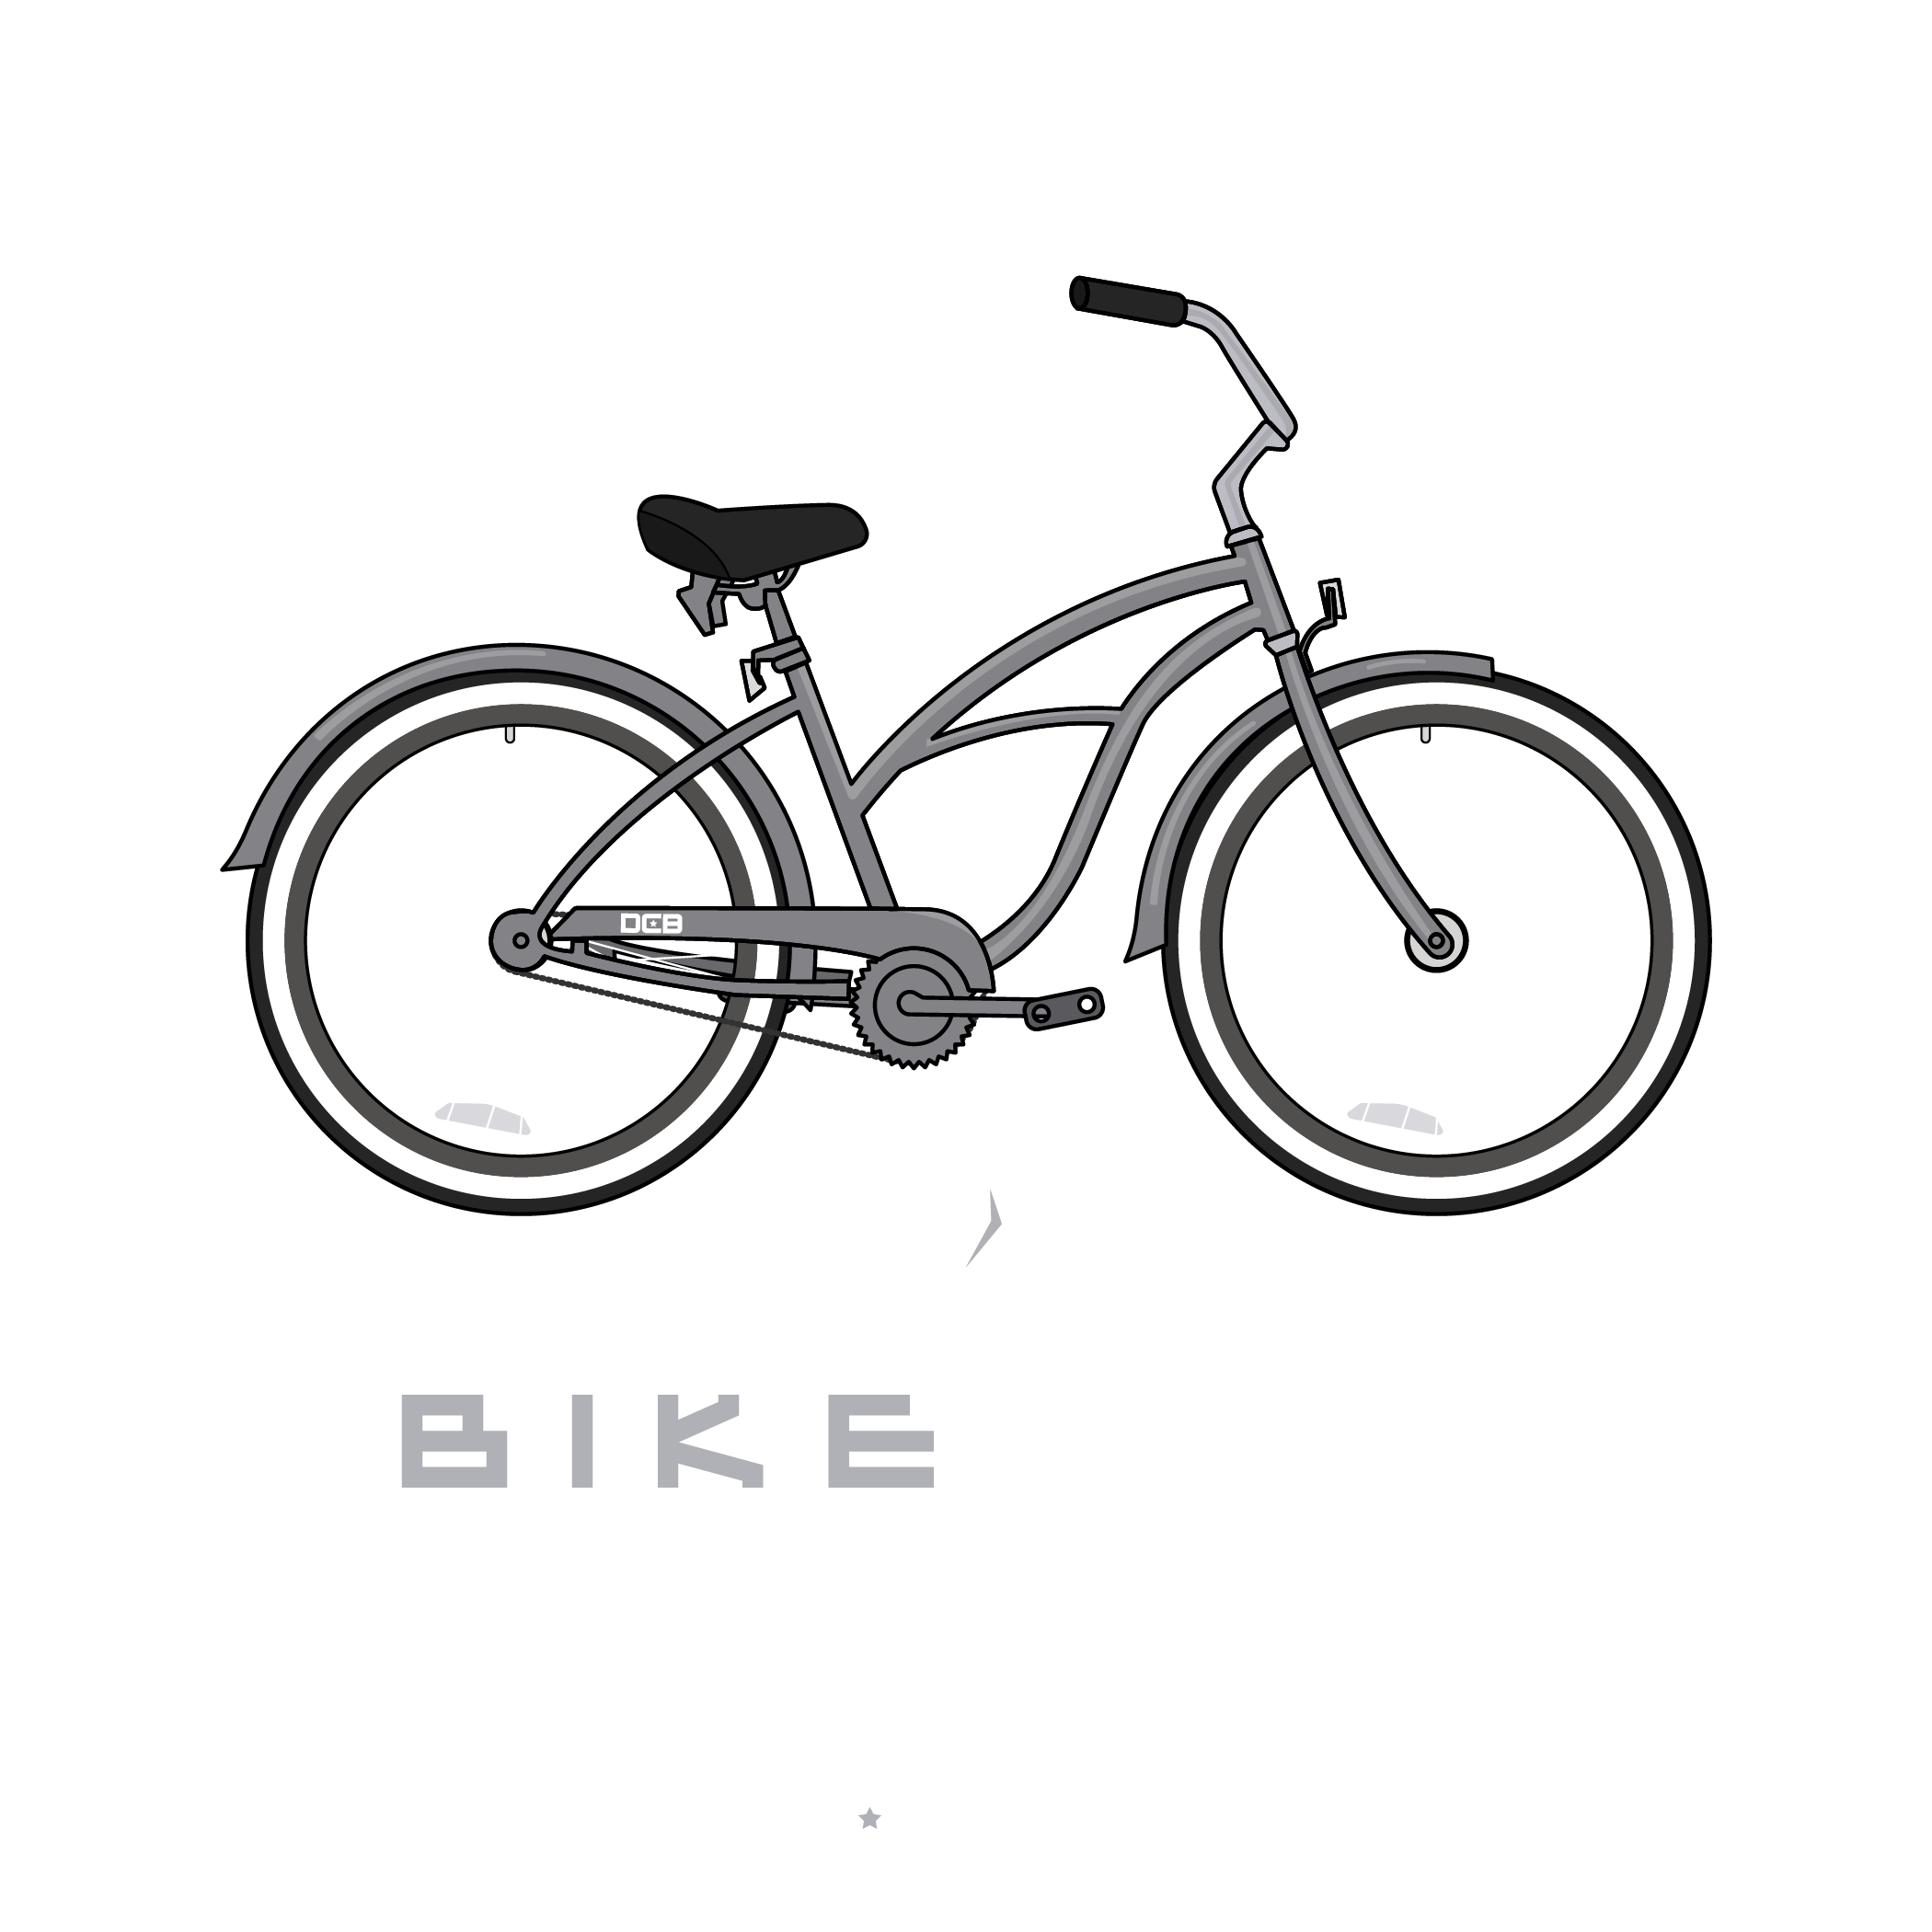 Bike Life Cruiser Grey Goose.png